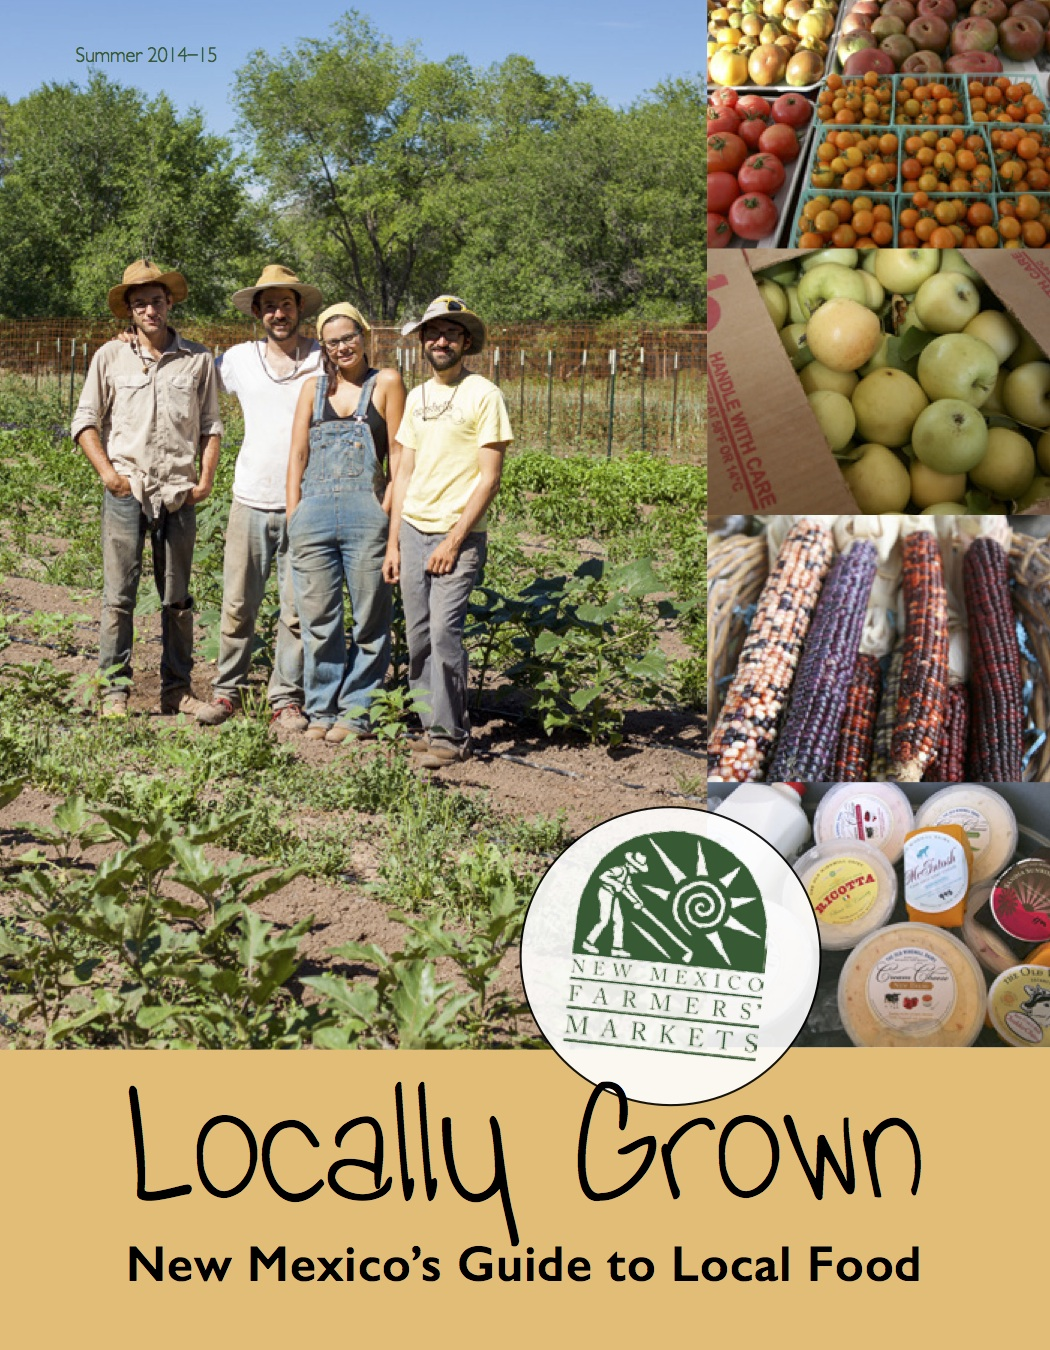 LOCALLY GROWN Food Guide Released